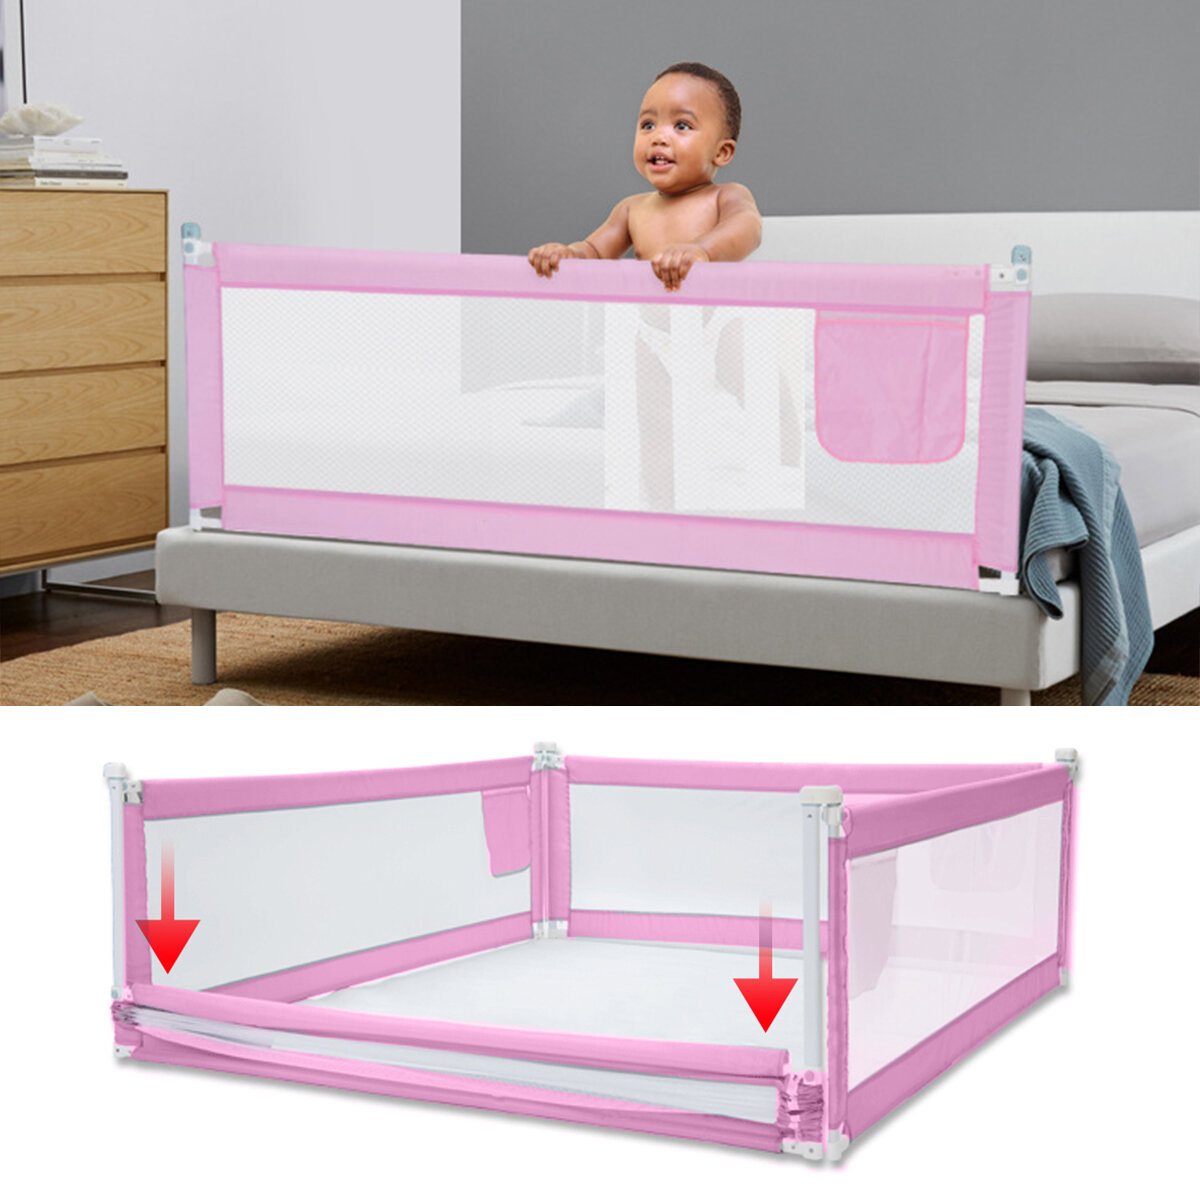 5-Level Adjustable Height Baby Bed Rail Fence Guardrail Infant Toddler Safety Gate Children Protective Gears